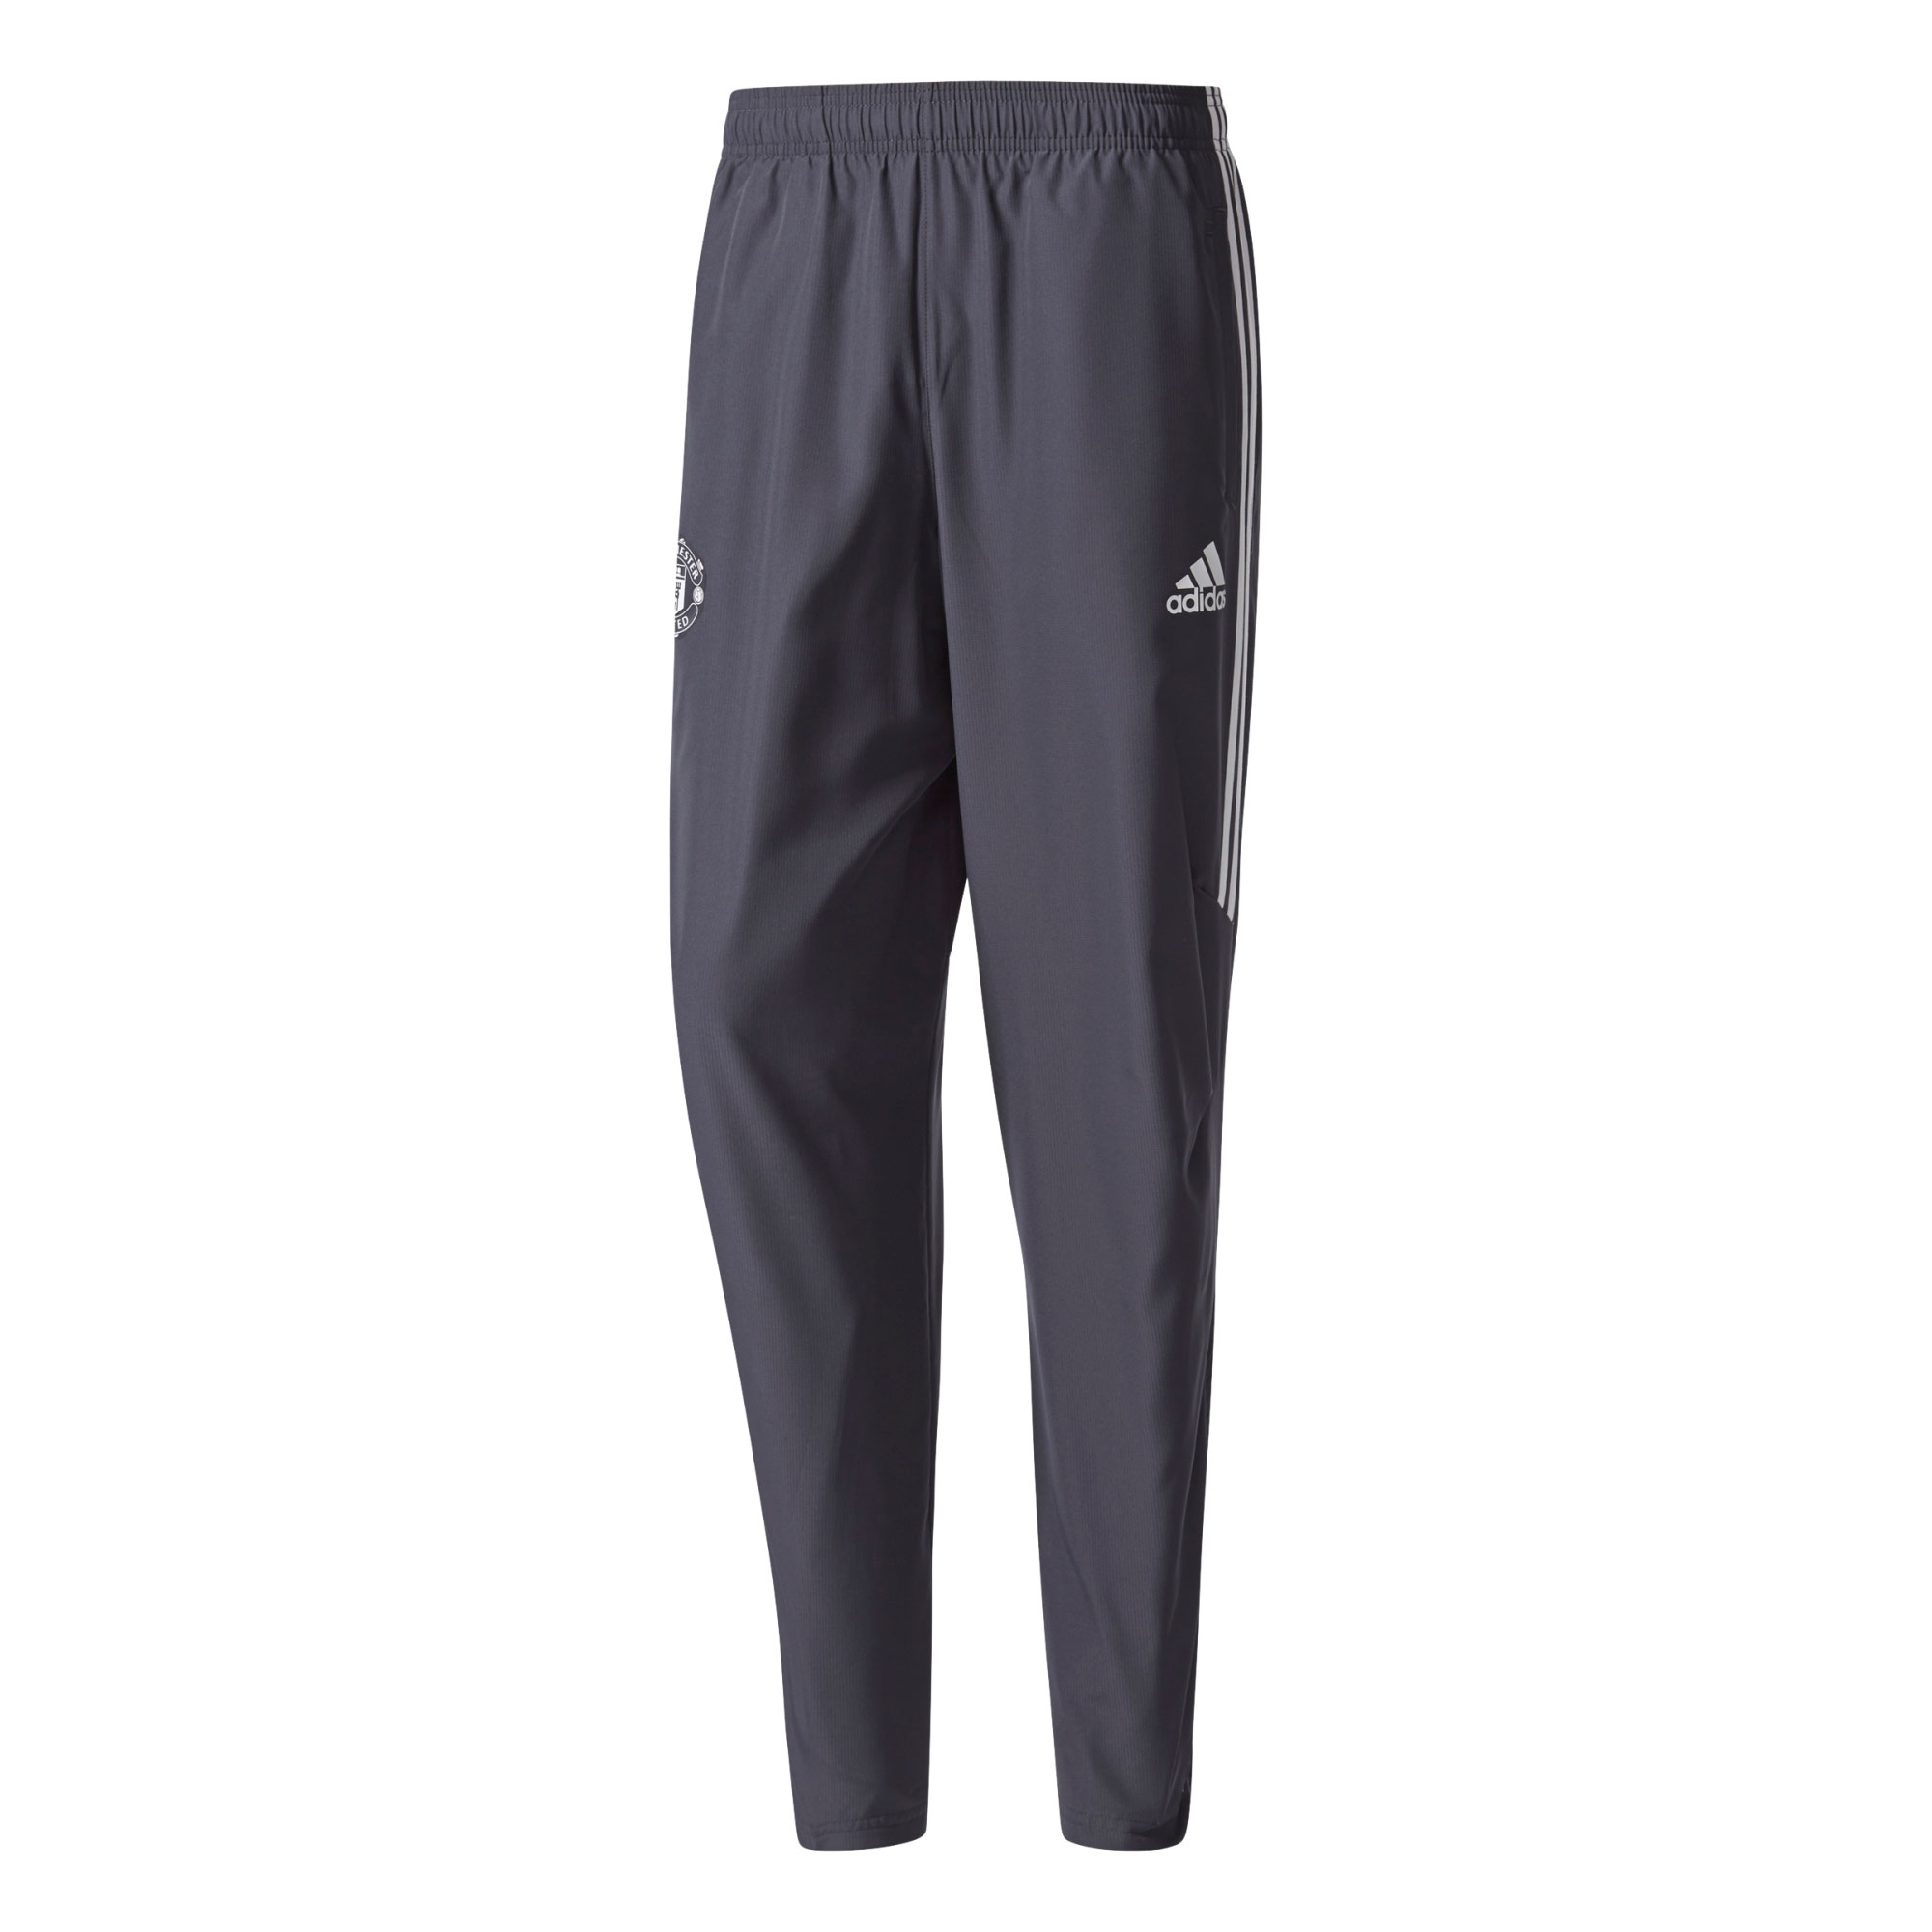 Manchester United Training Woven Pant - Dark Grey